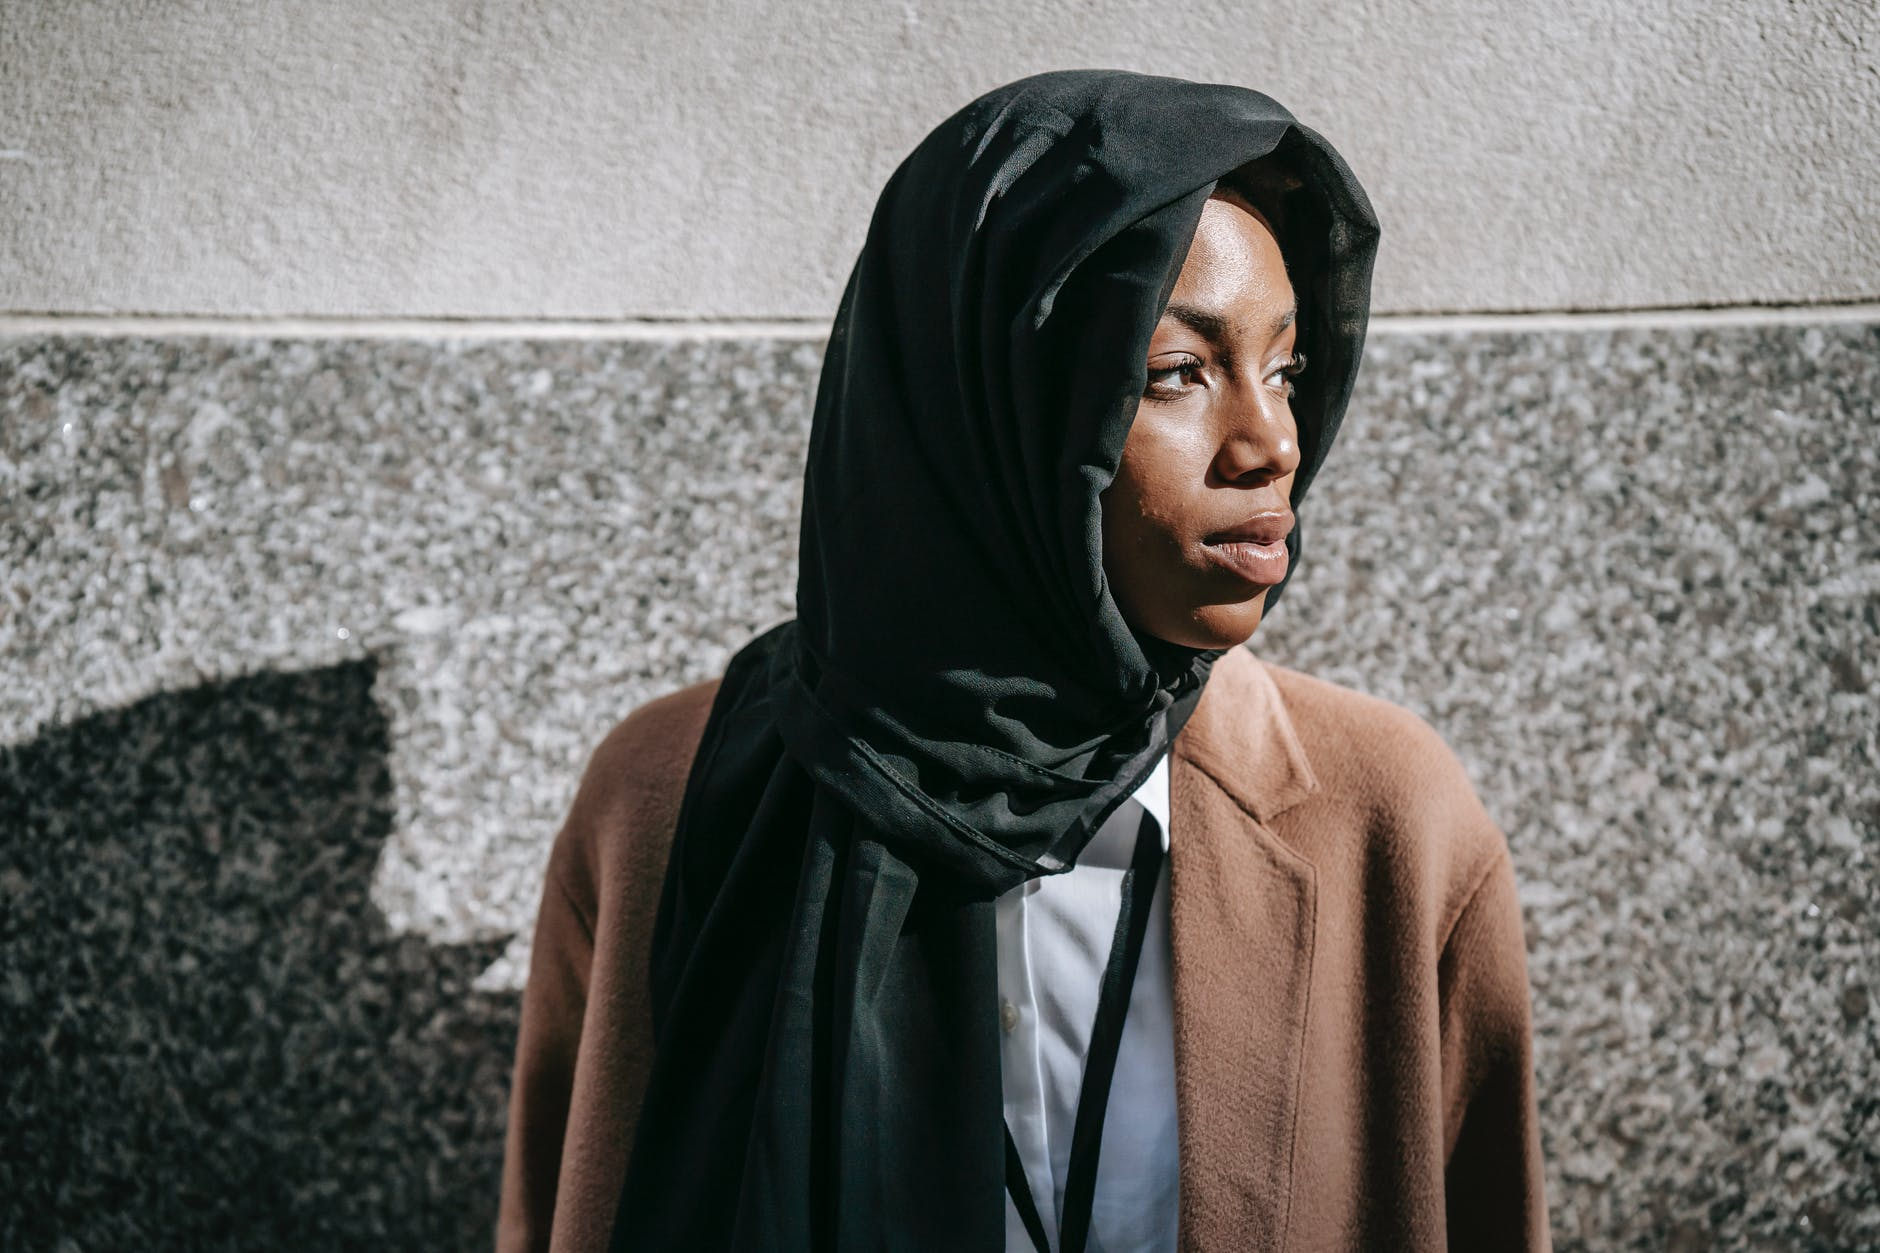 young muslim black woman in headscarf standing against marble wall